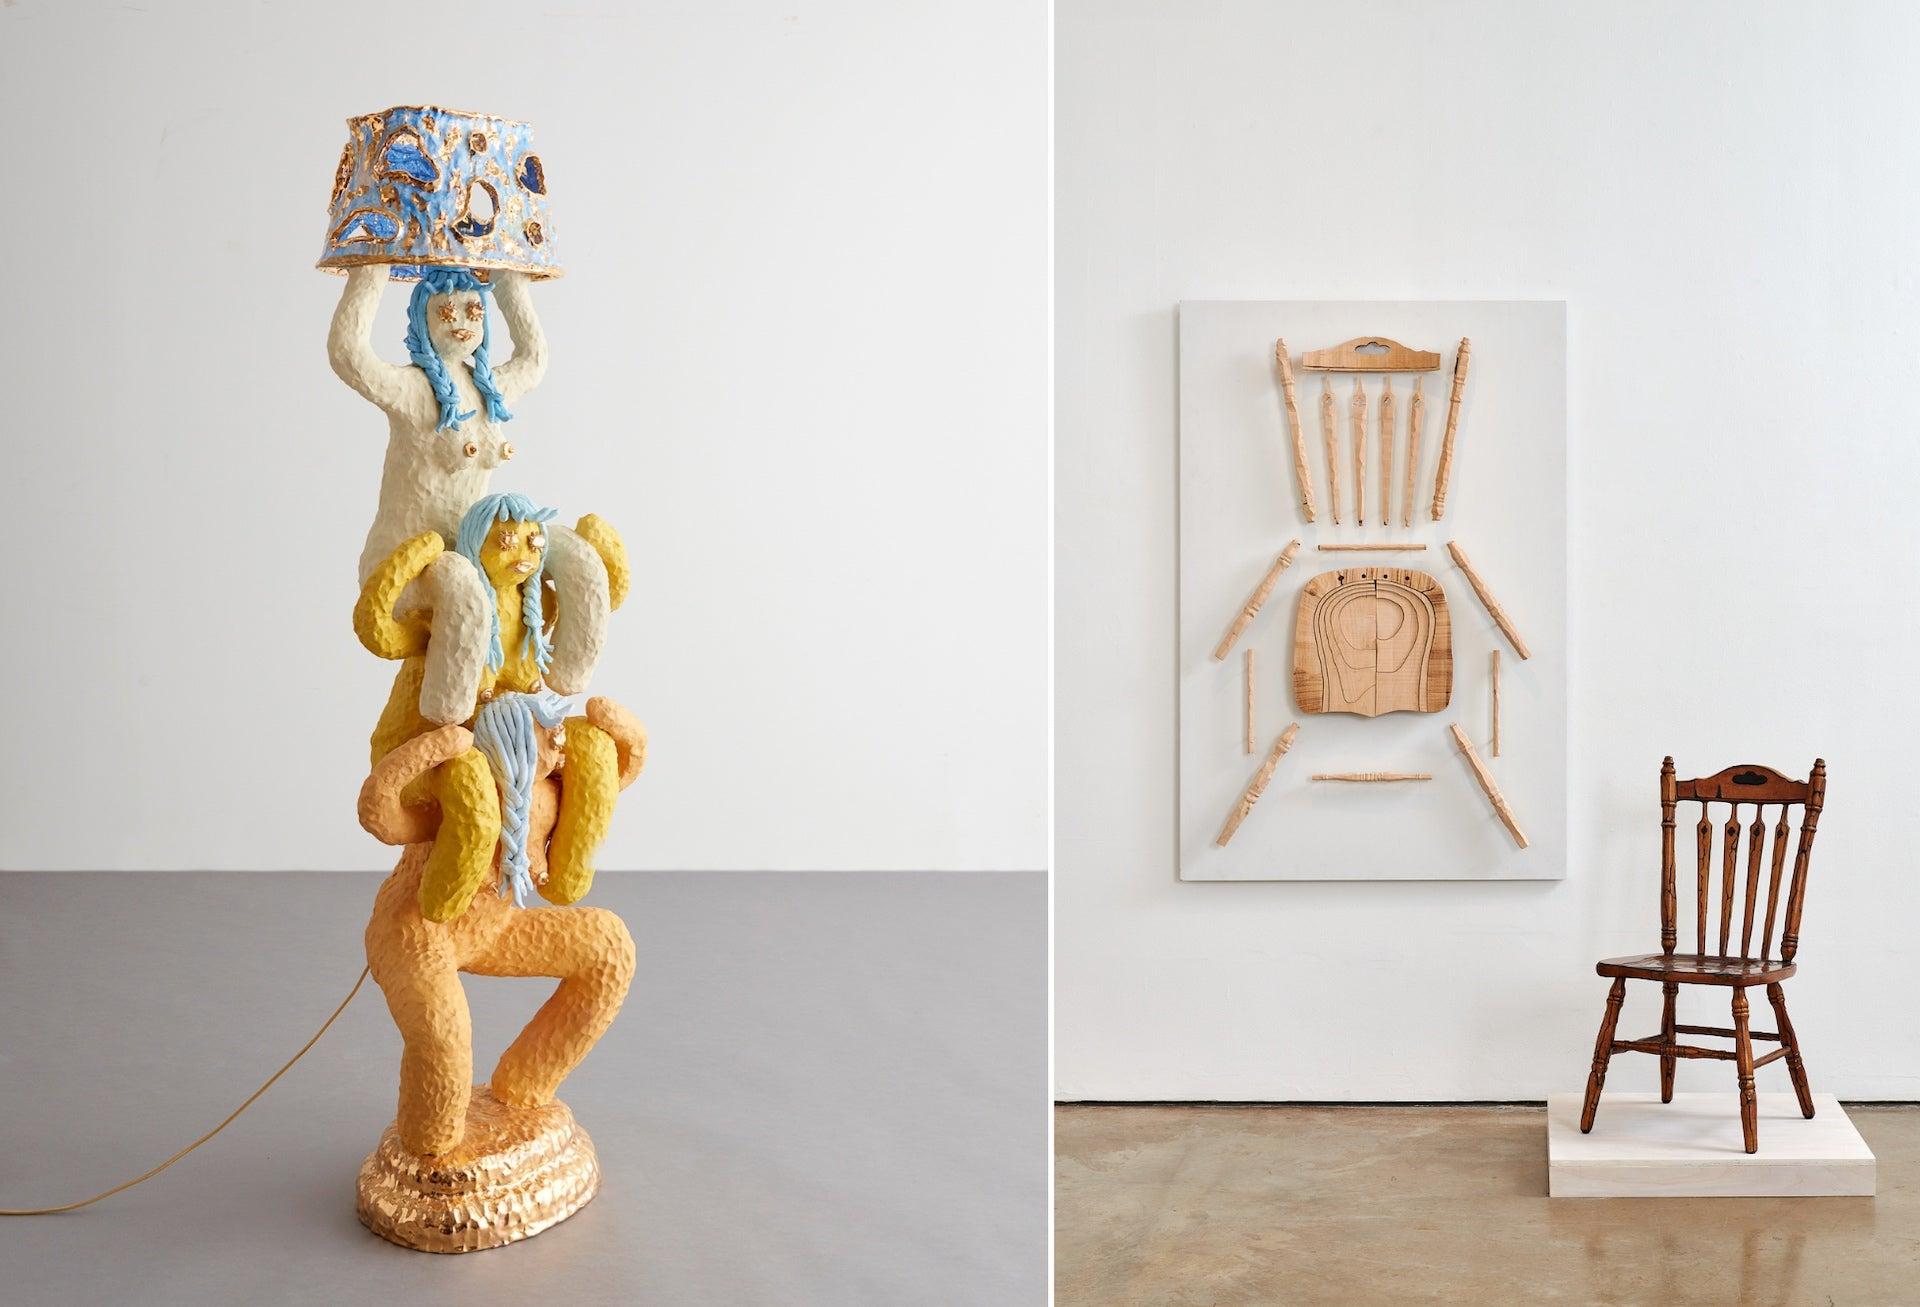 Triple Squat by Katie Stout, 2018. Photo courtesy of R & Company | Skinned Chair by Joyce Lin, 2019. Photo © Peter Molick; Courtesy of the Artist